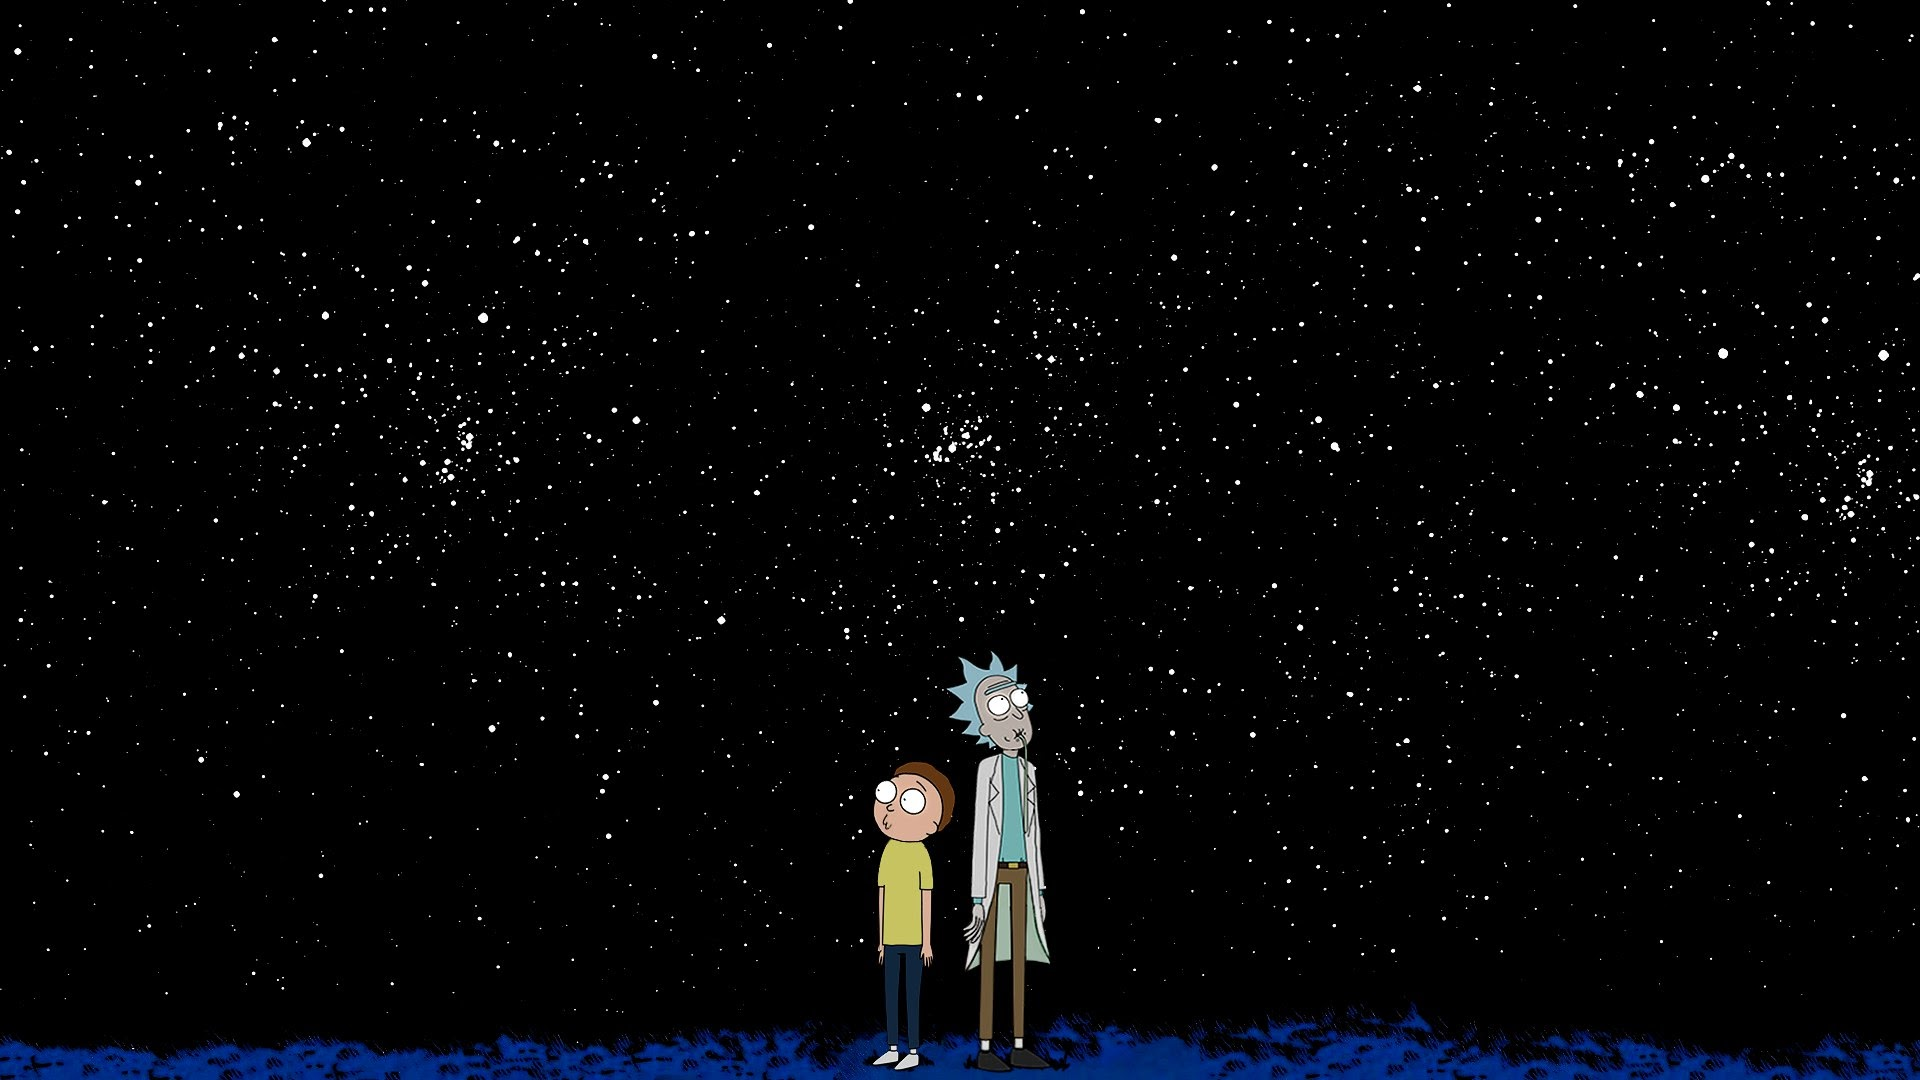 1366x768 Rick And Morty Hd 1366x768 Resolution Hd 4k Wallpapers